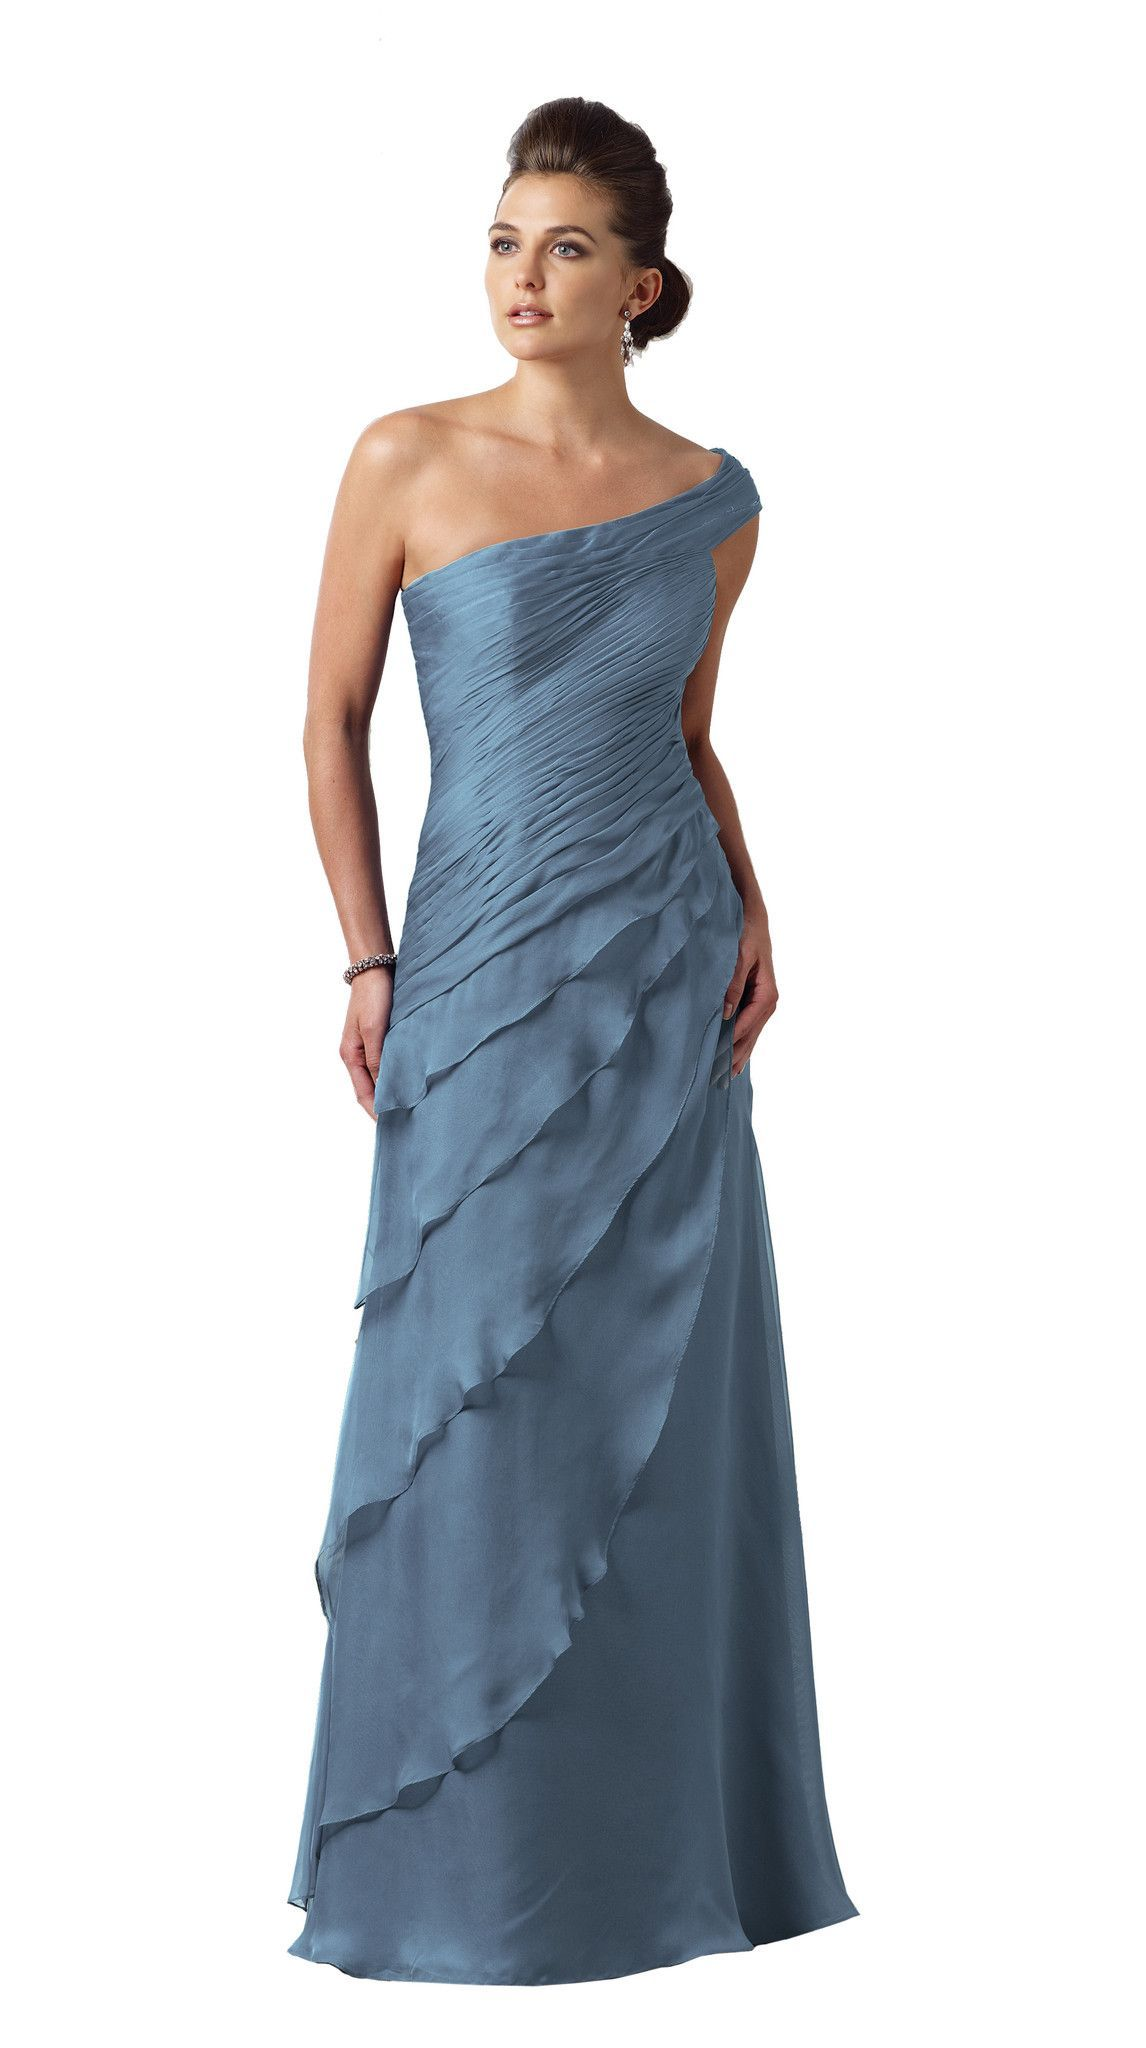 Mother of the Bride Dress from Montage by Mon Cheri style 112910 is ...